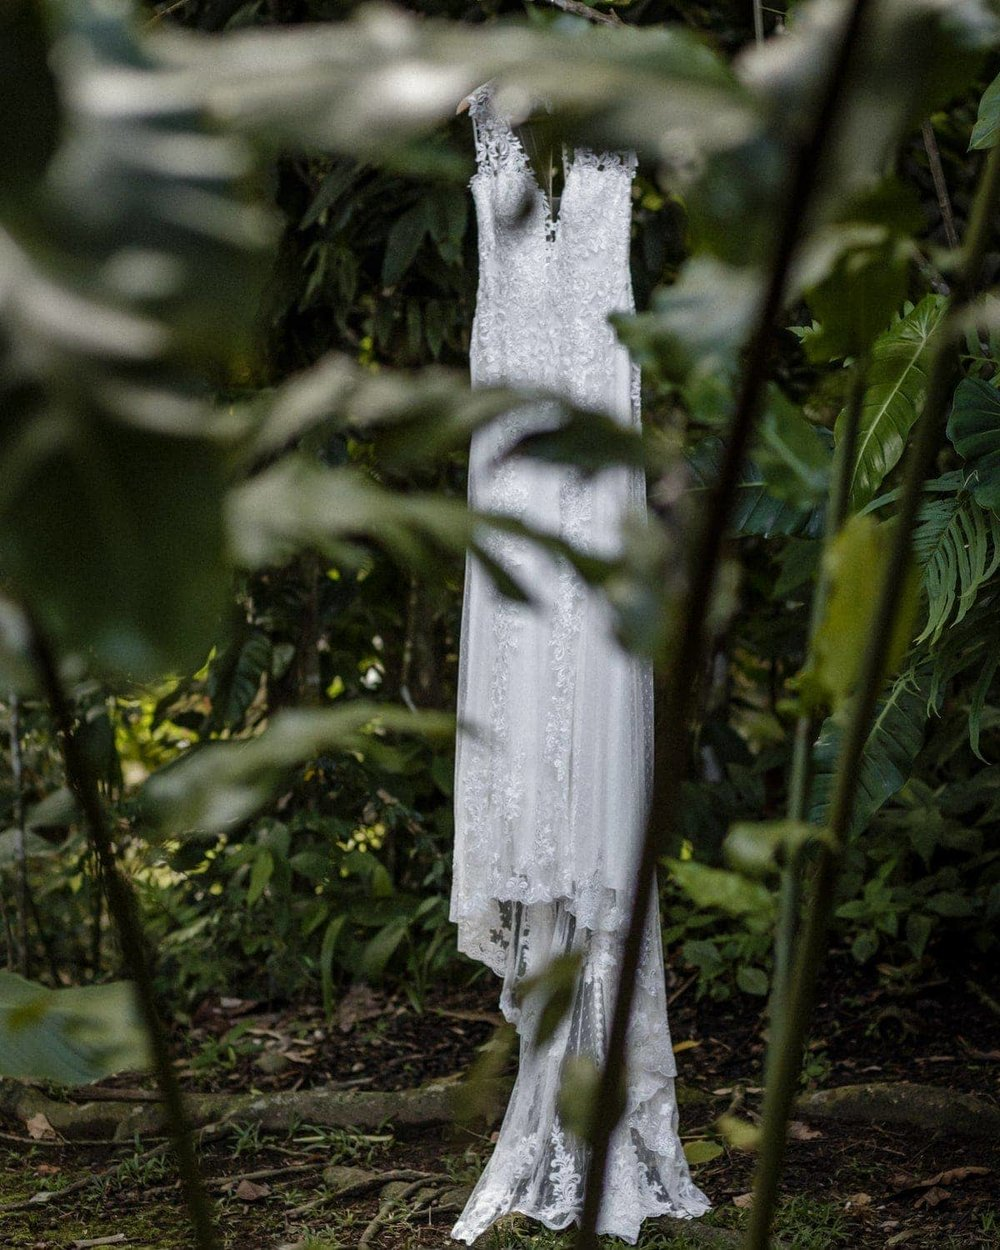 White wedding dress hanging from tree in tropical garden.